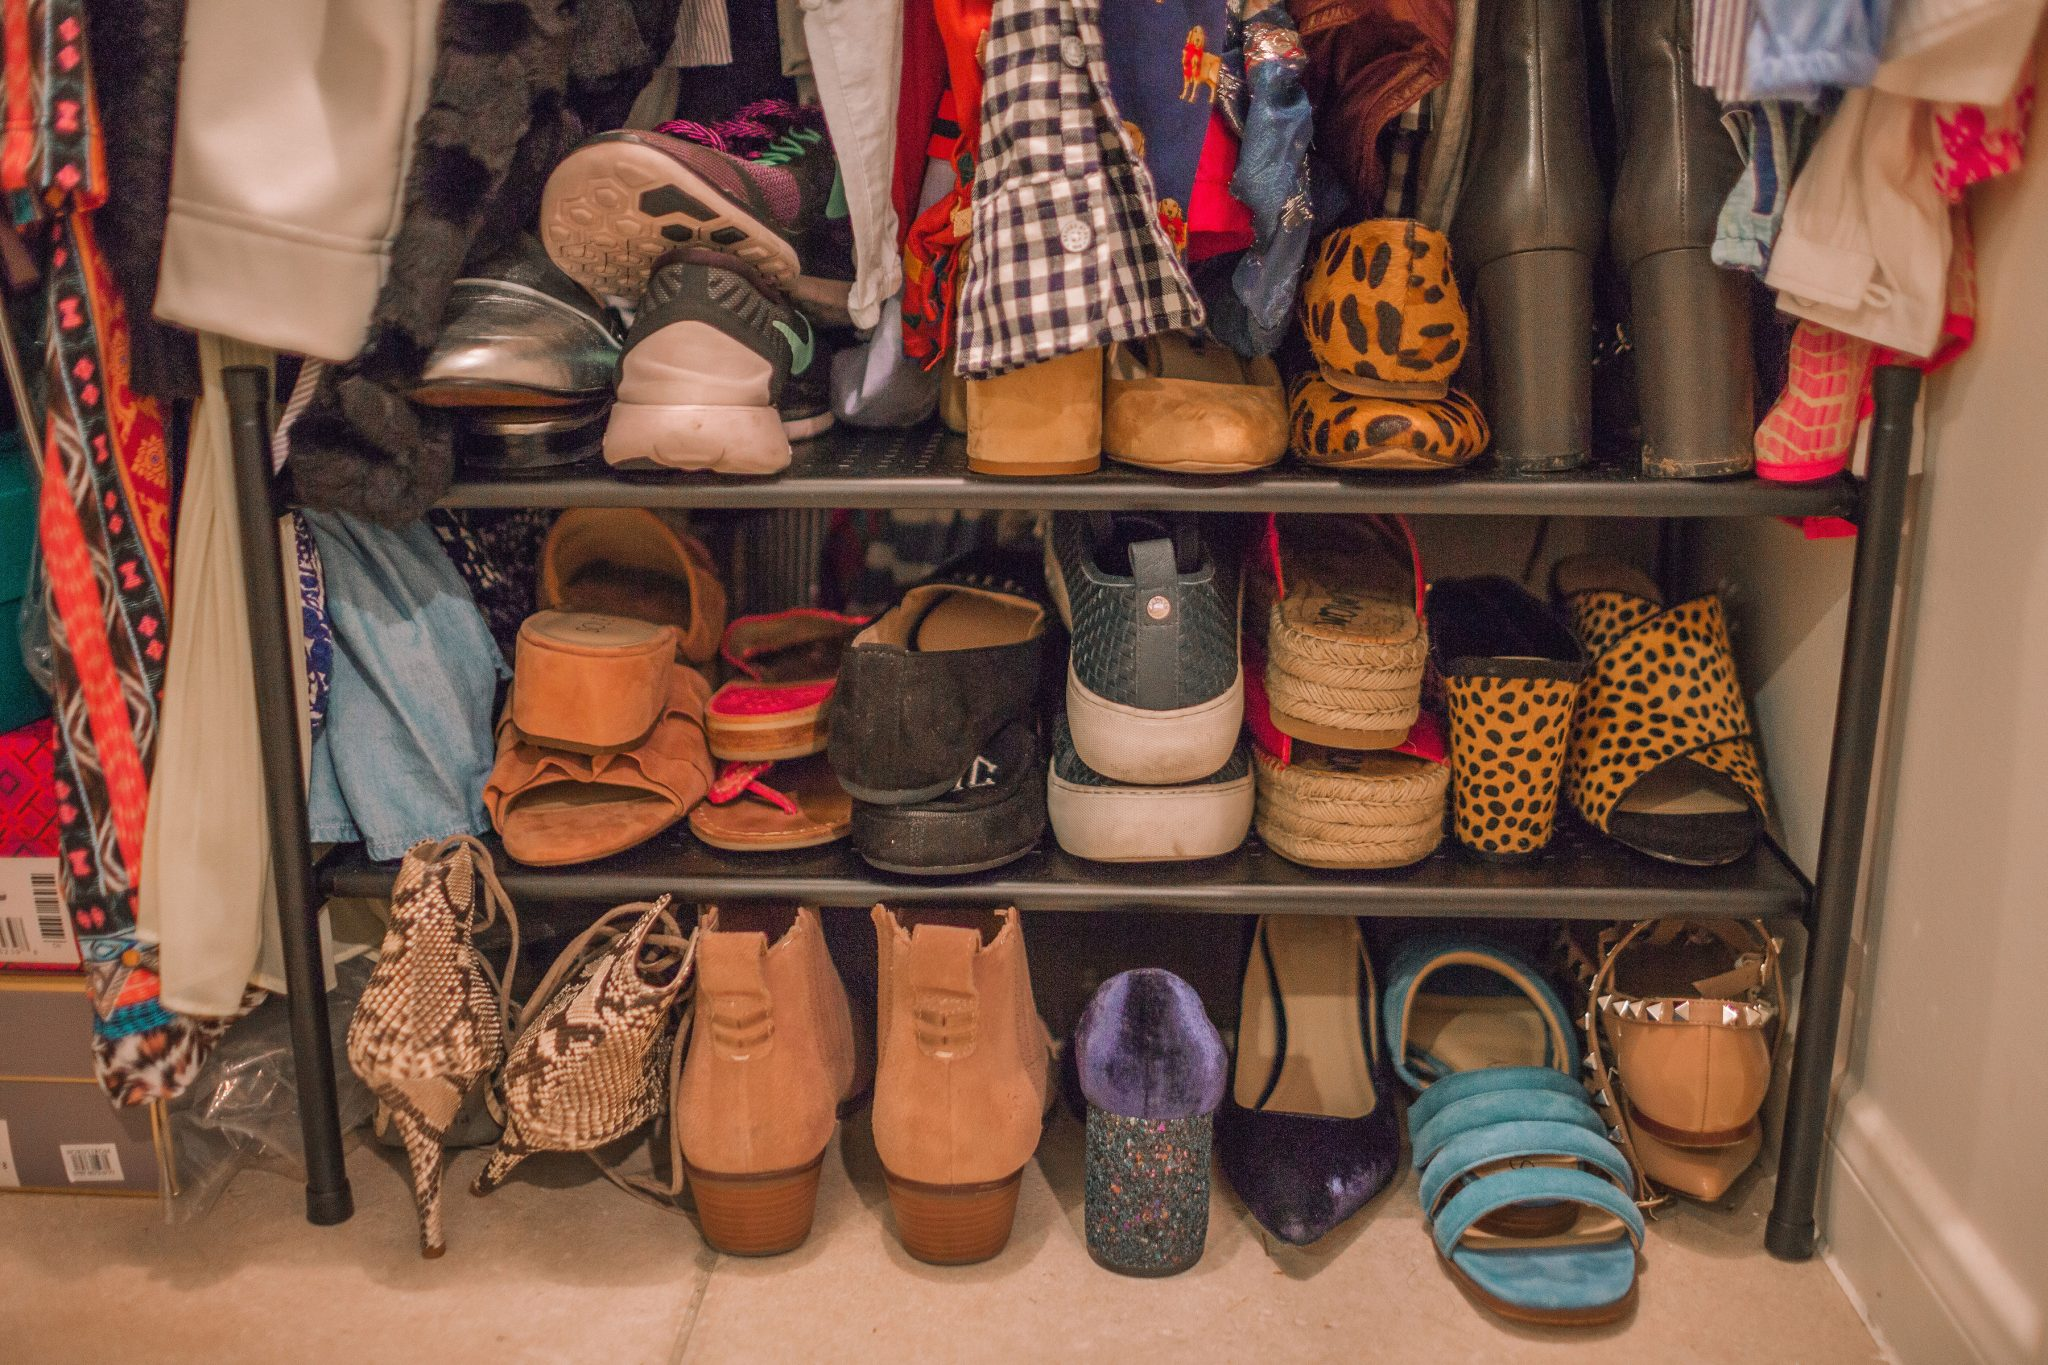 Shoe organization in a small closet